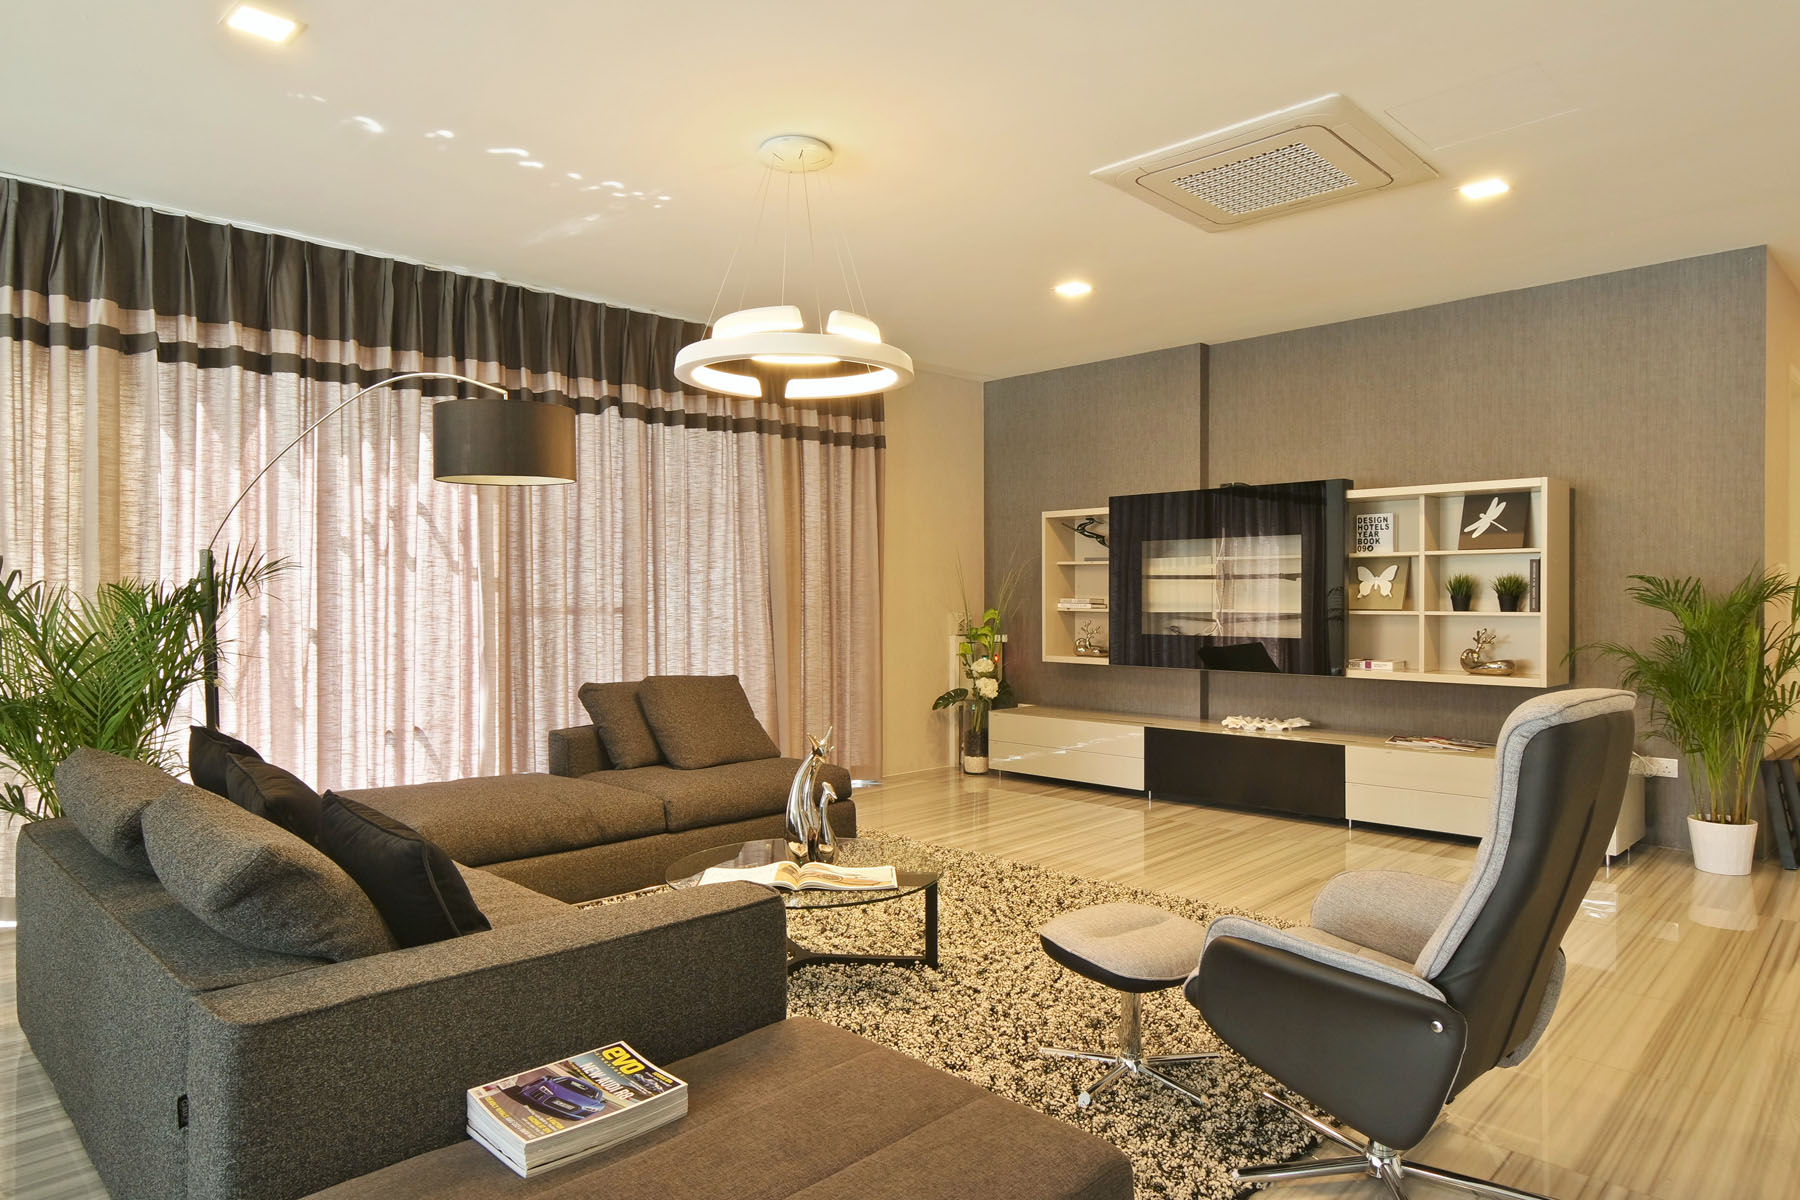 Living room designers in Singapore